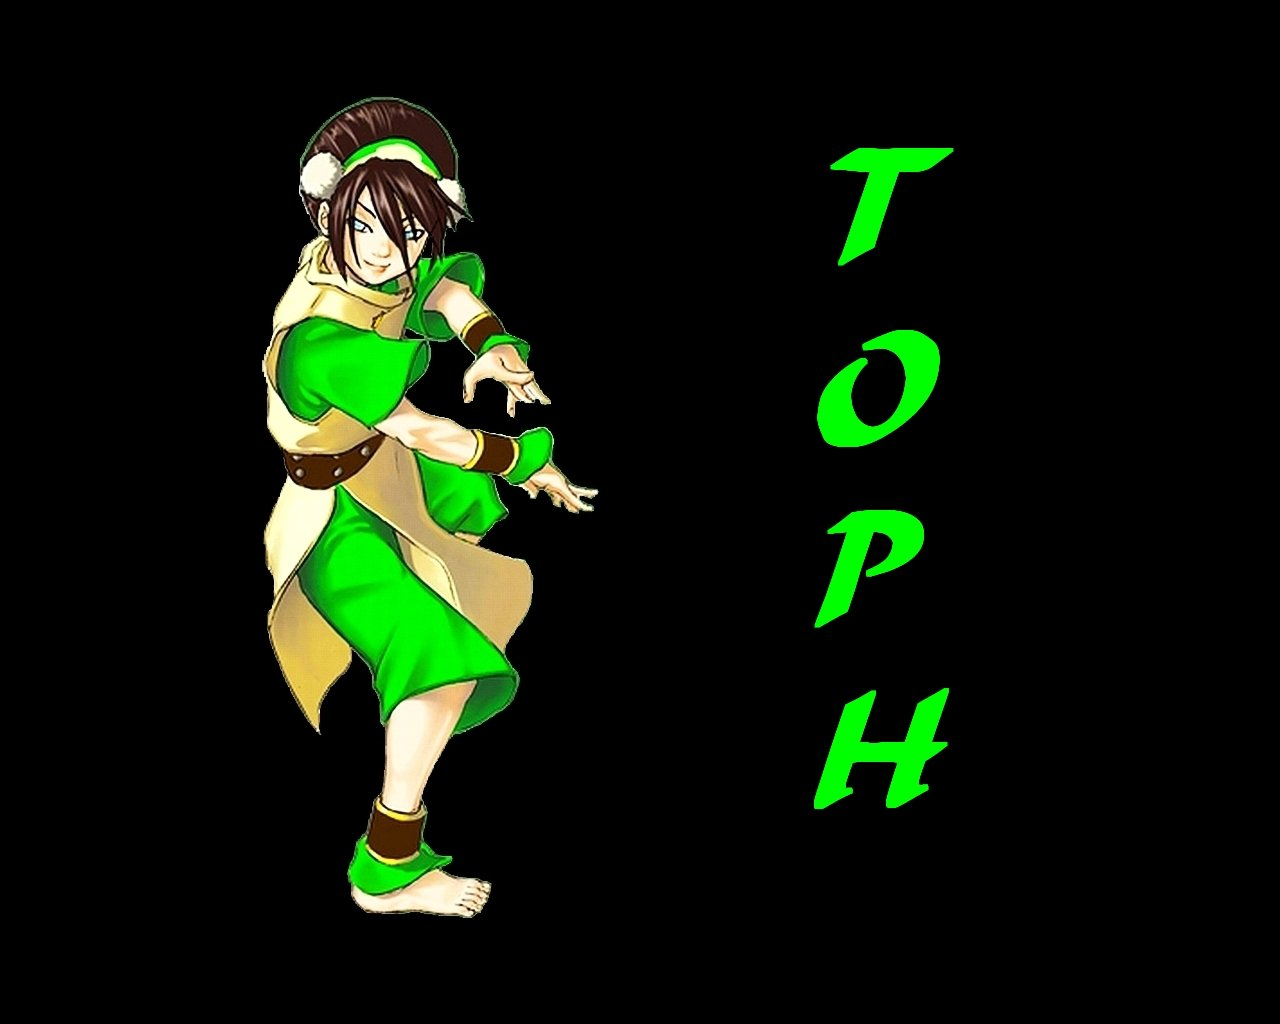 Free Download Computer Wallpaper Xp Wallpaper Toph From Avatar The